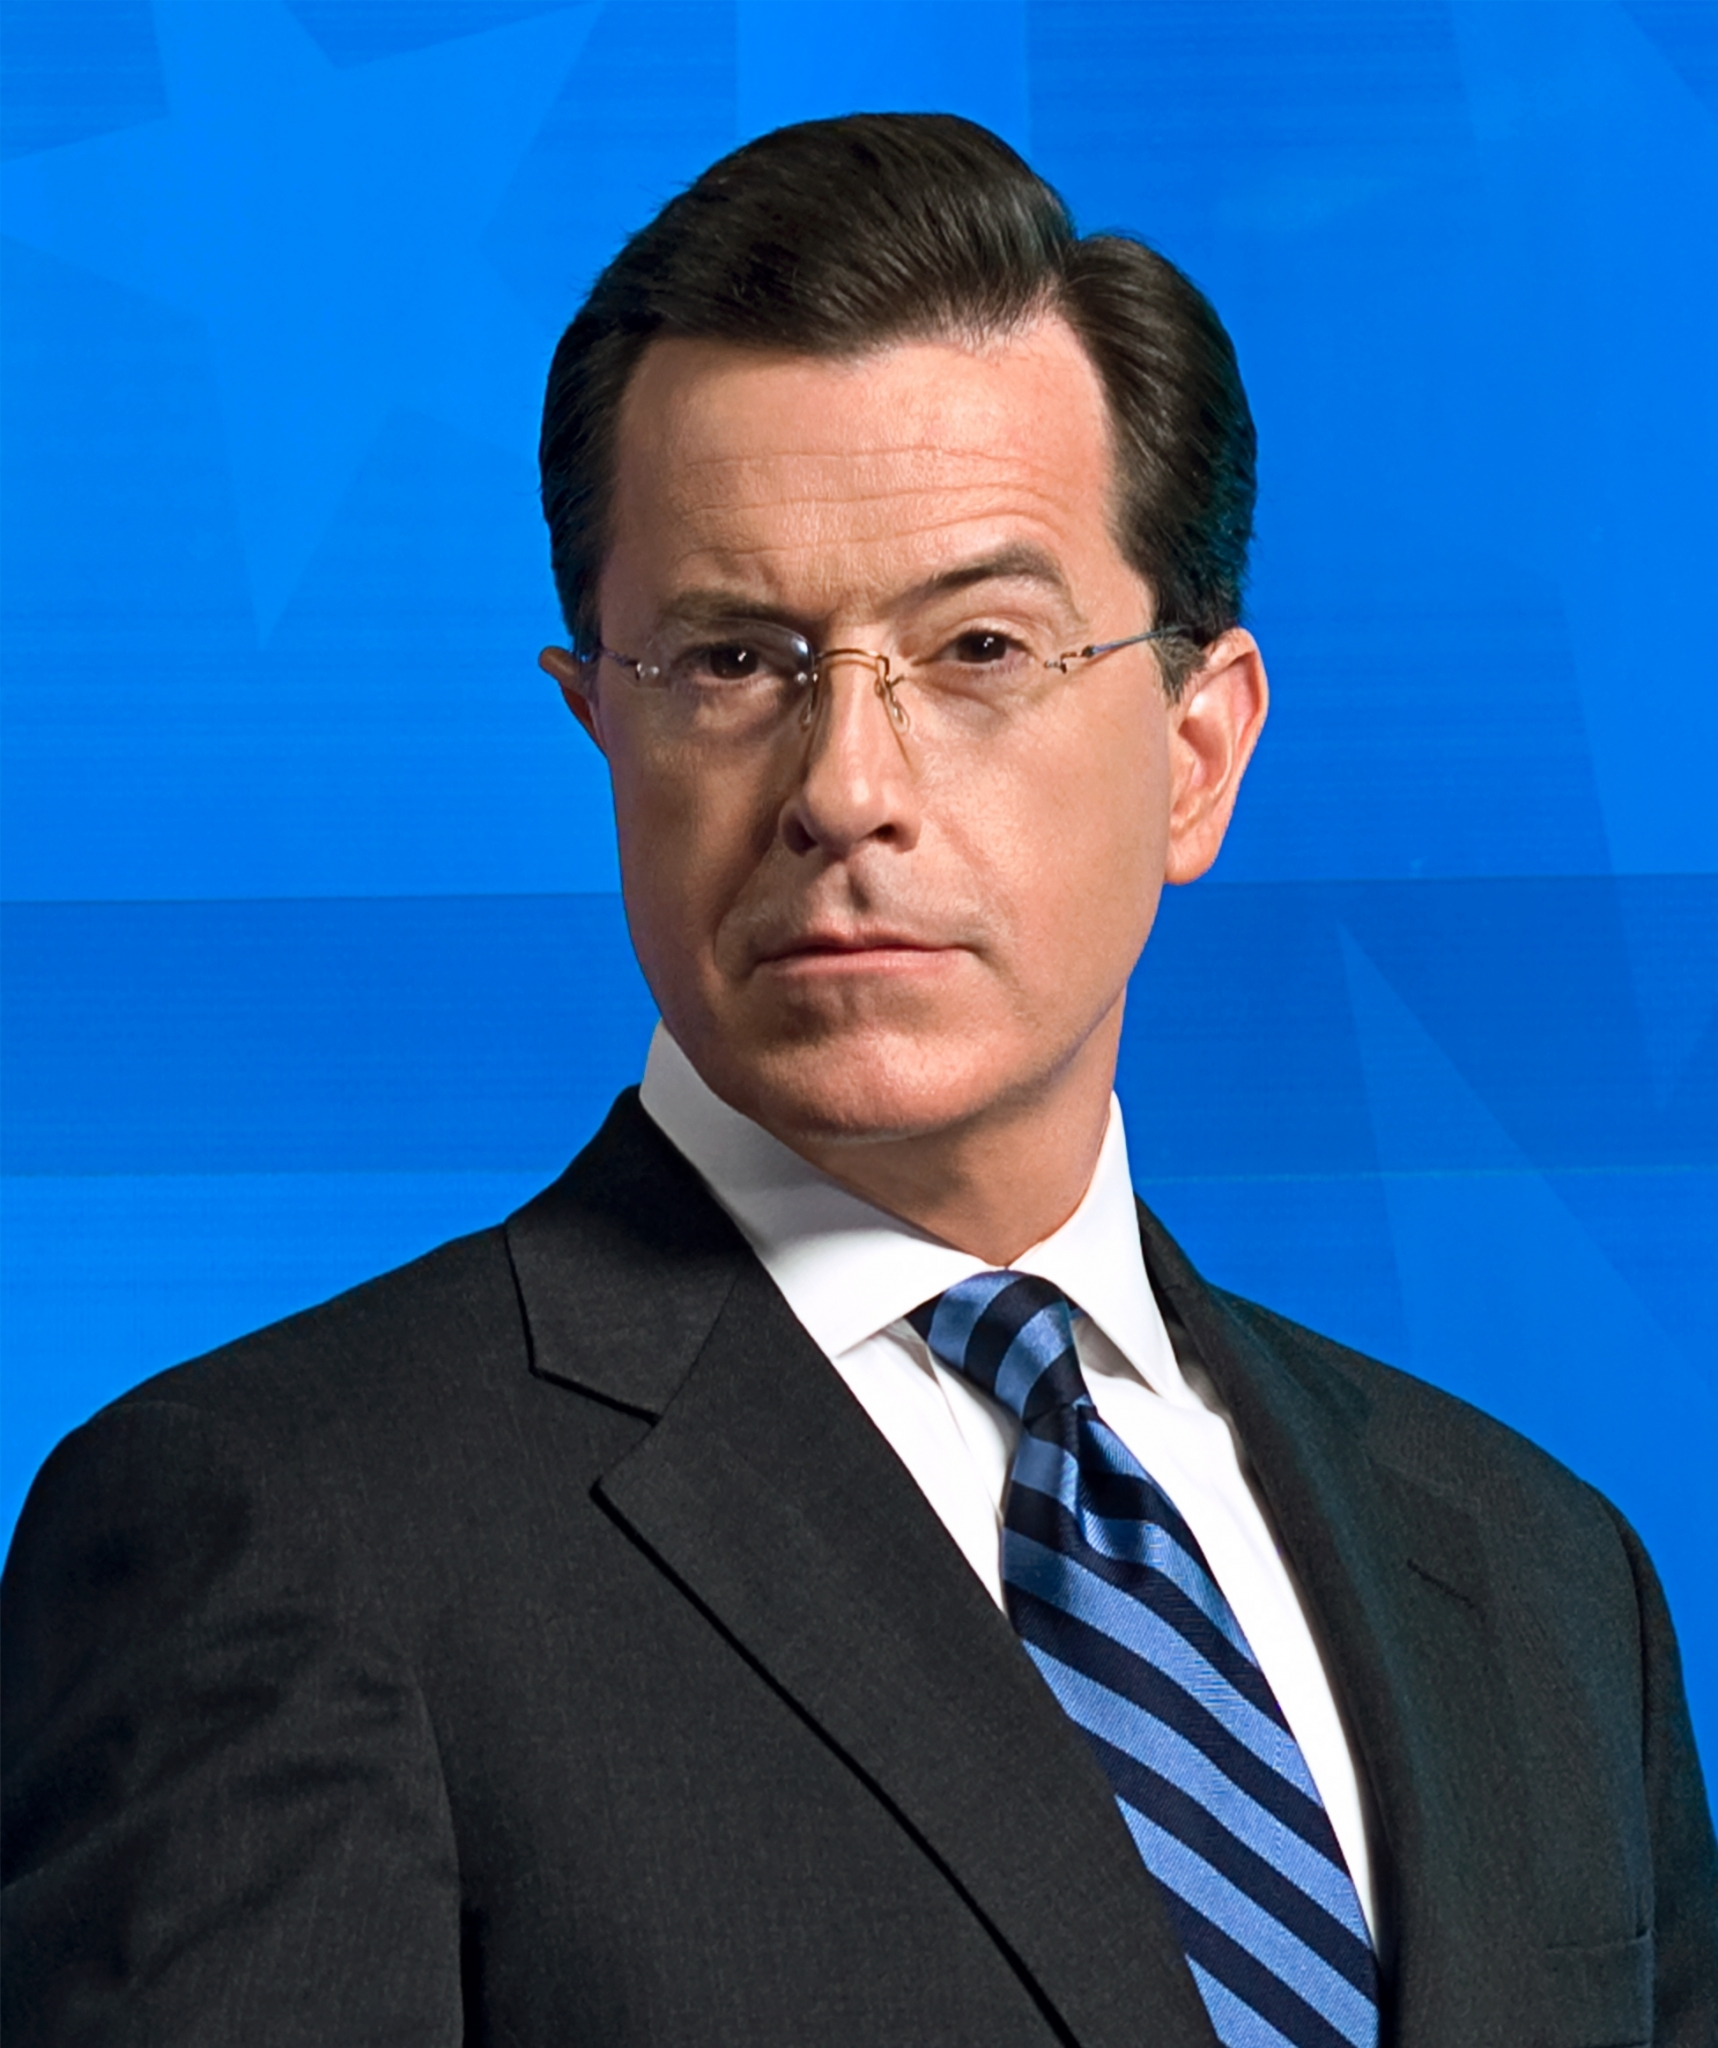 Stephen Colbert wallpapers High Resolution and Quality ... Stephen Colbert